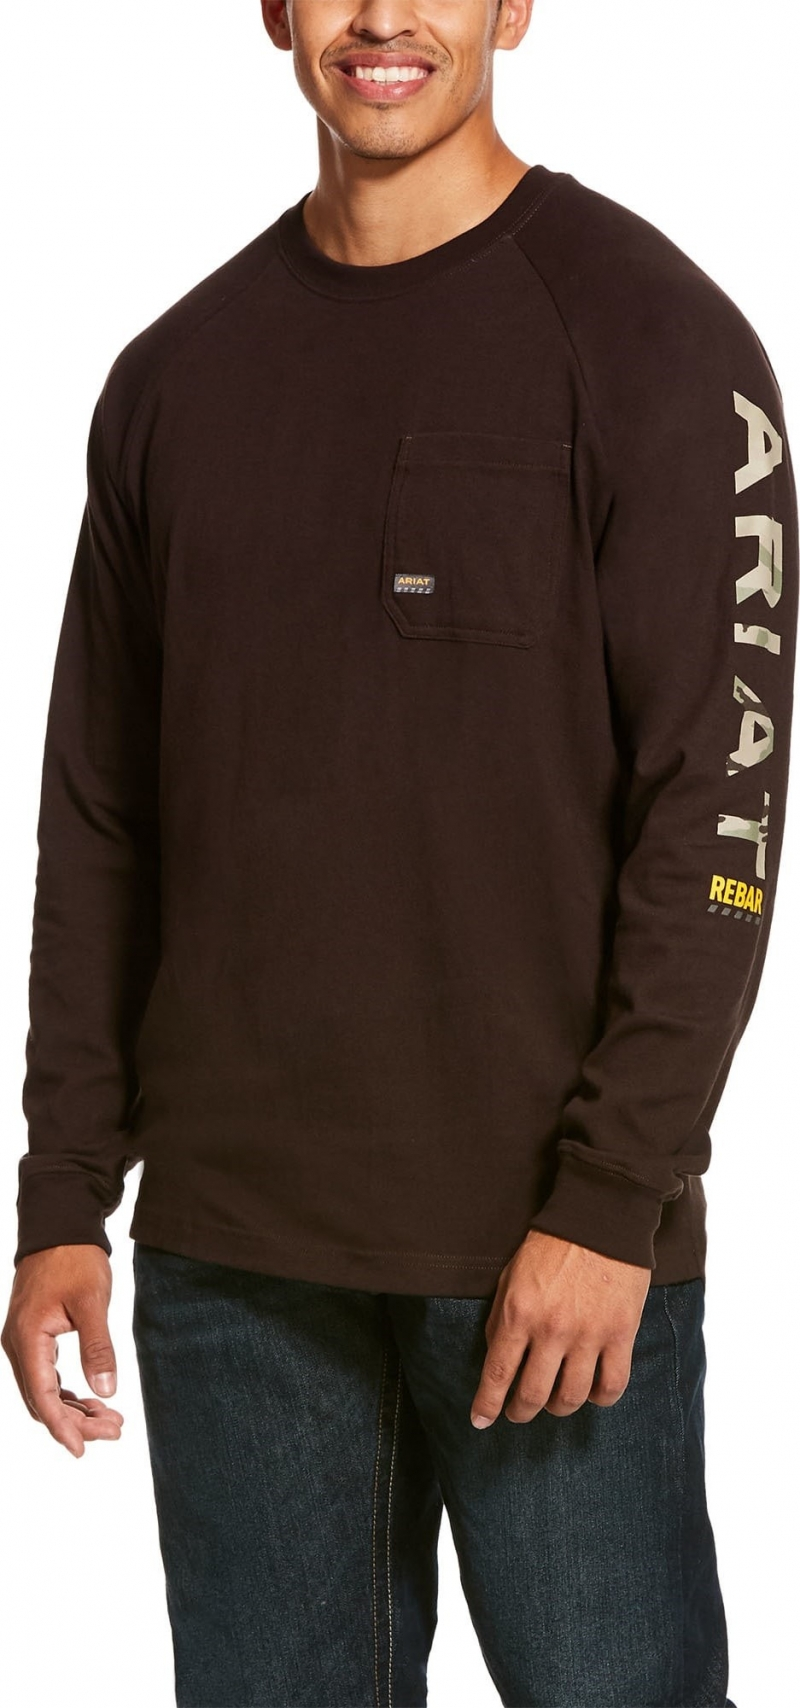 Ariat Rebar Cottonstrong Graphic Crewneck L/S T-Shirt - Dark Brown